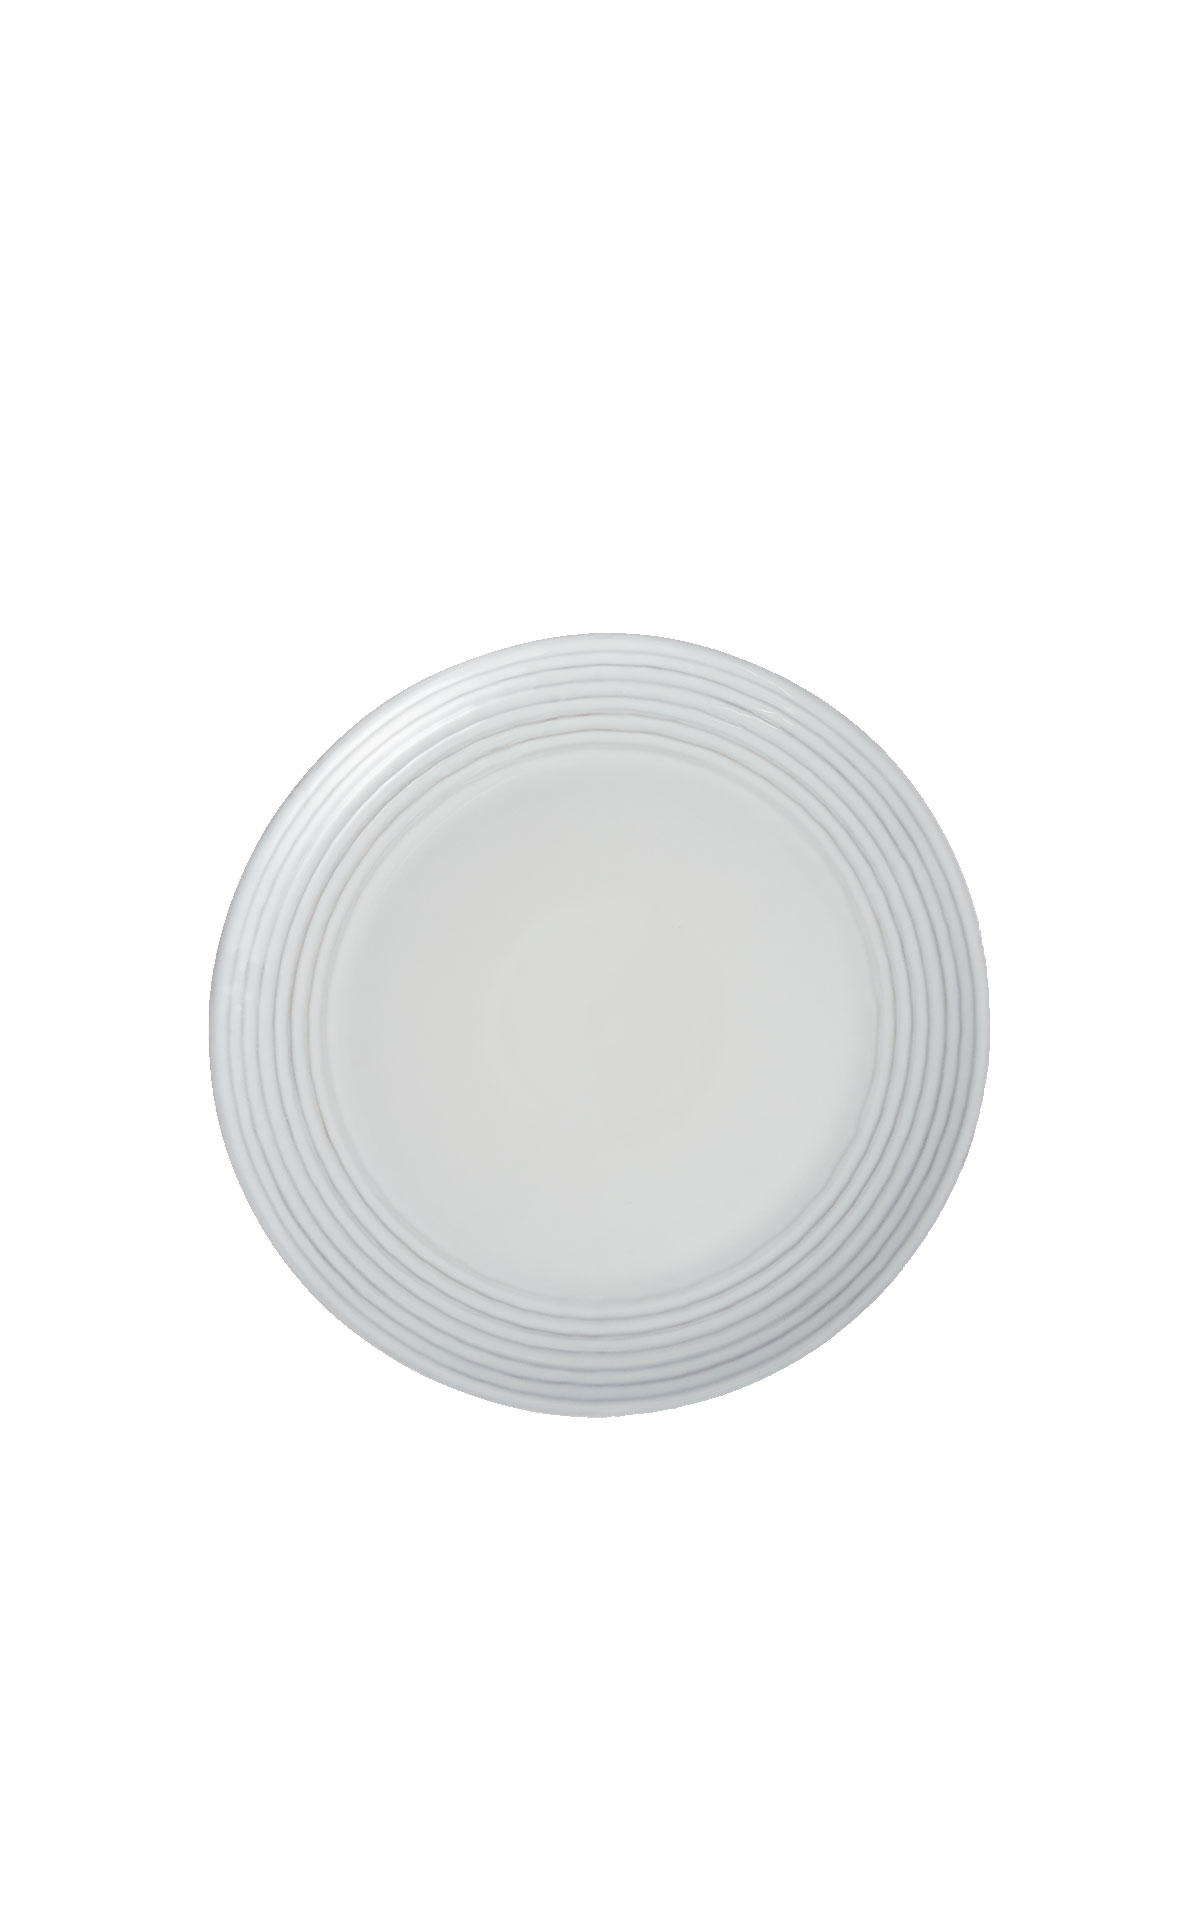 Soho Home Everit main plate 27cm from Bicester Village